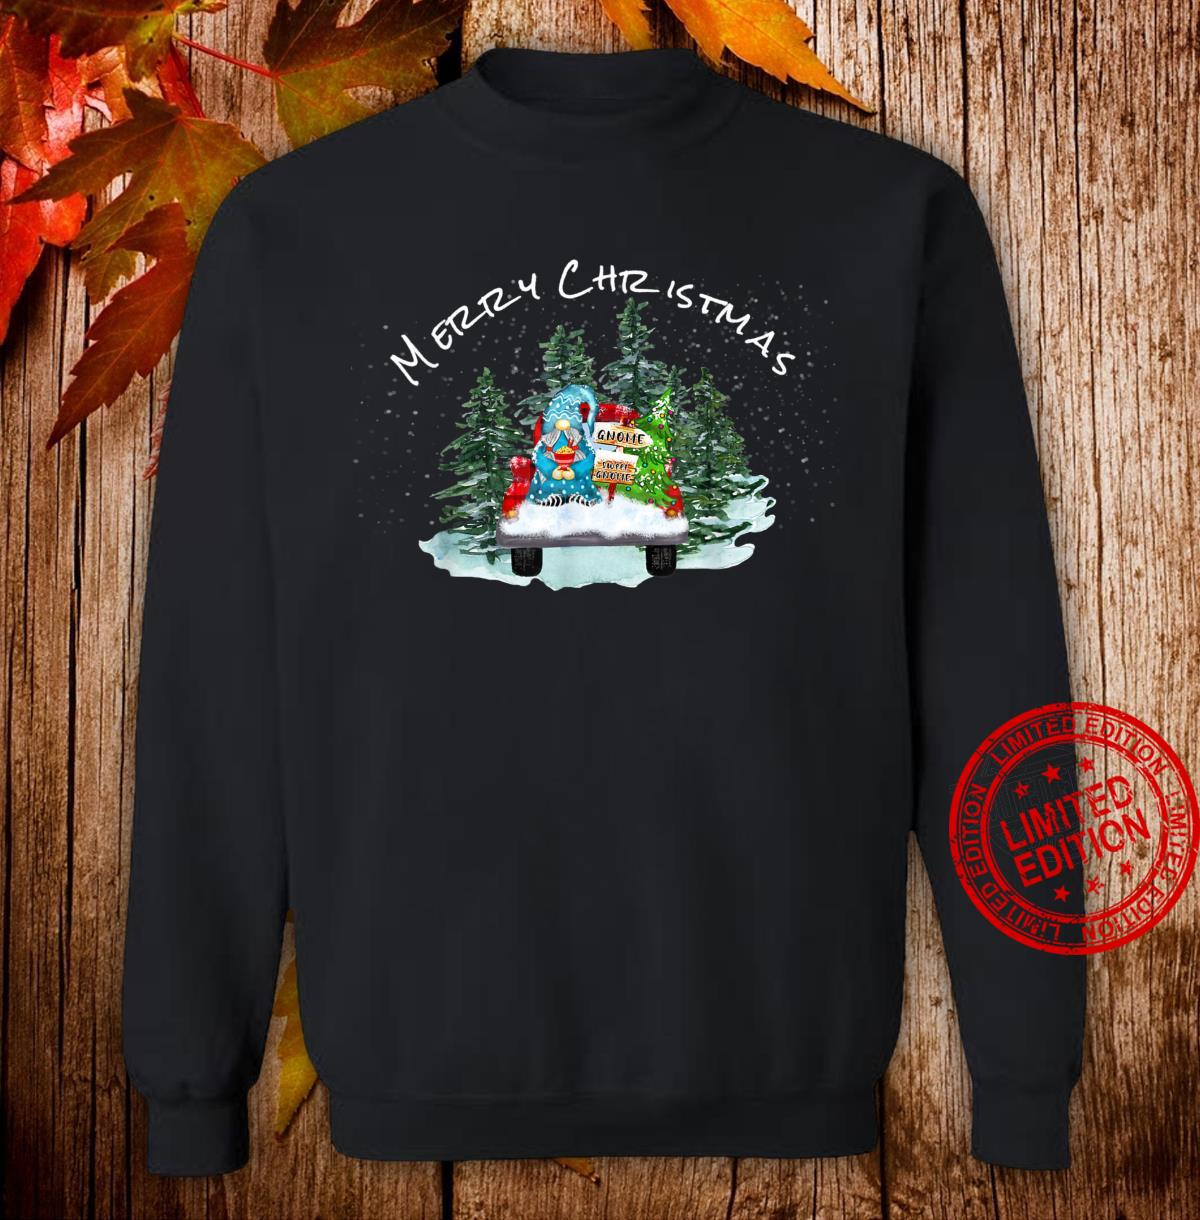 Merry Christmas Xmas Gnome Red Truck Pajamas PJ Tops Shirt sweater